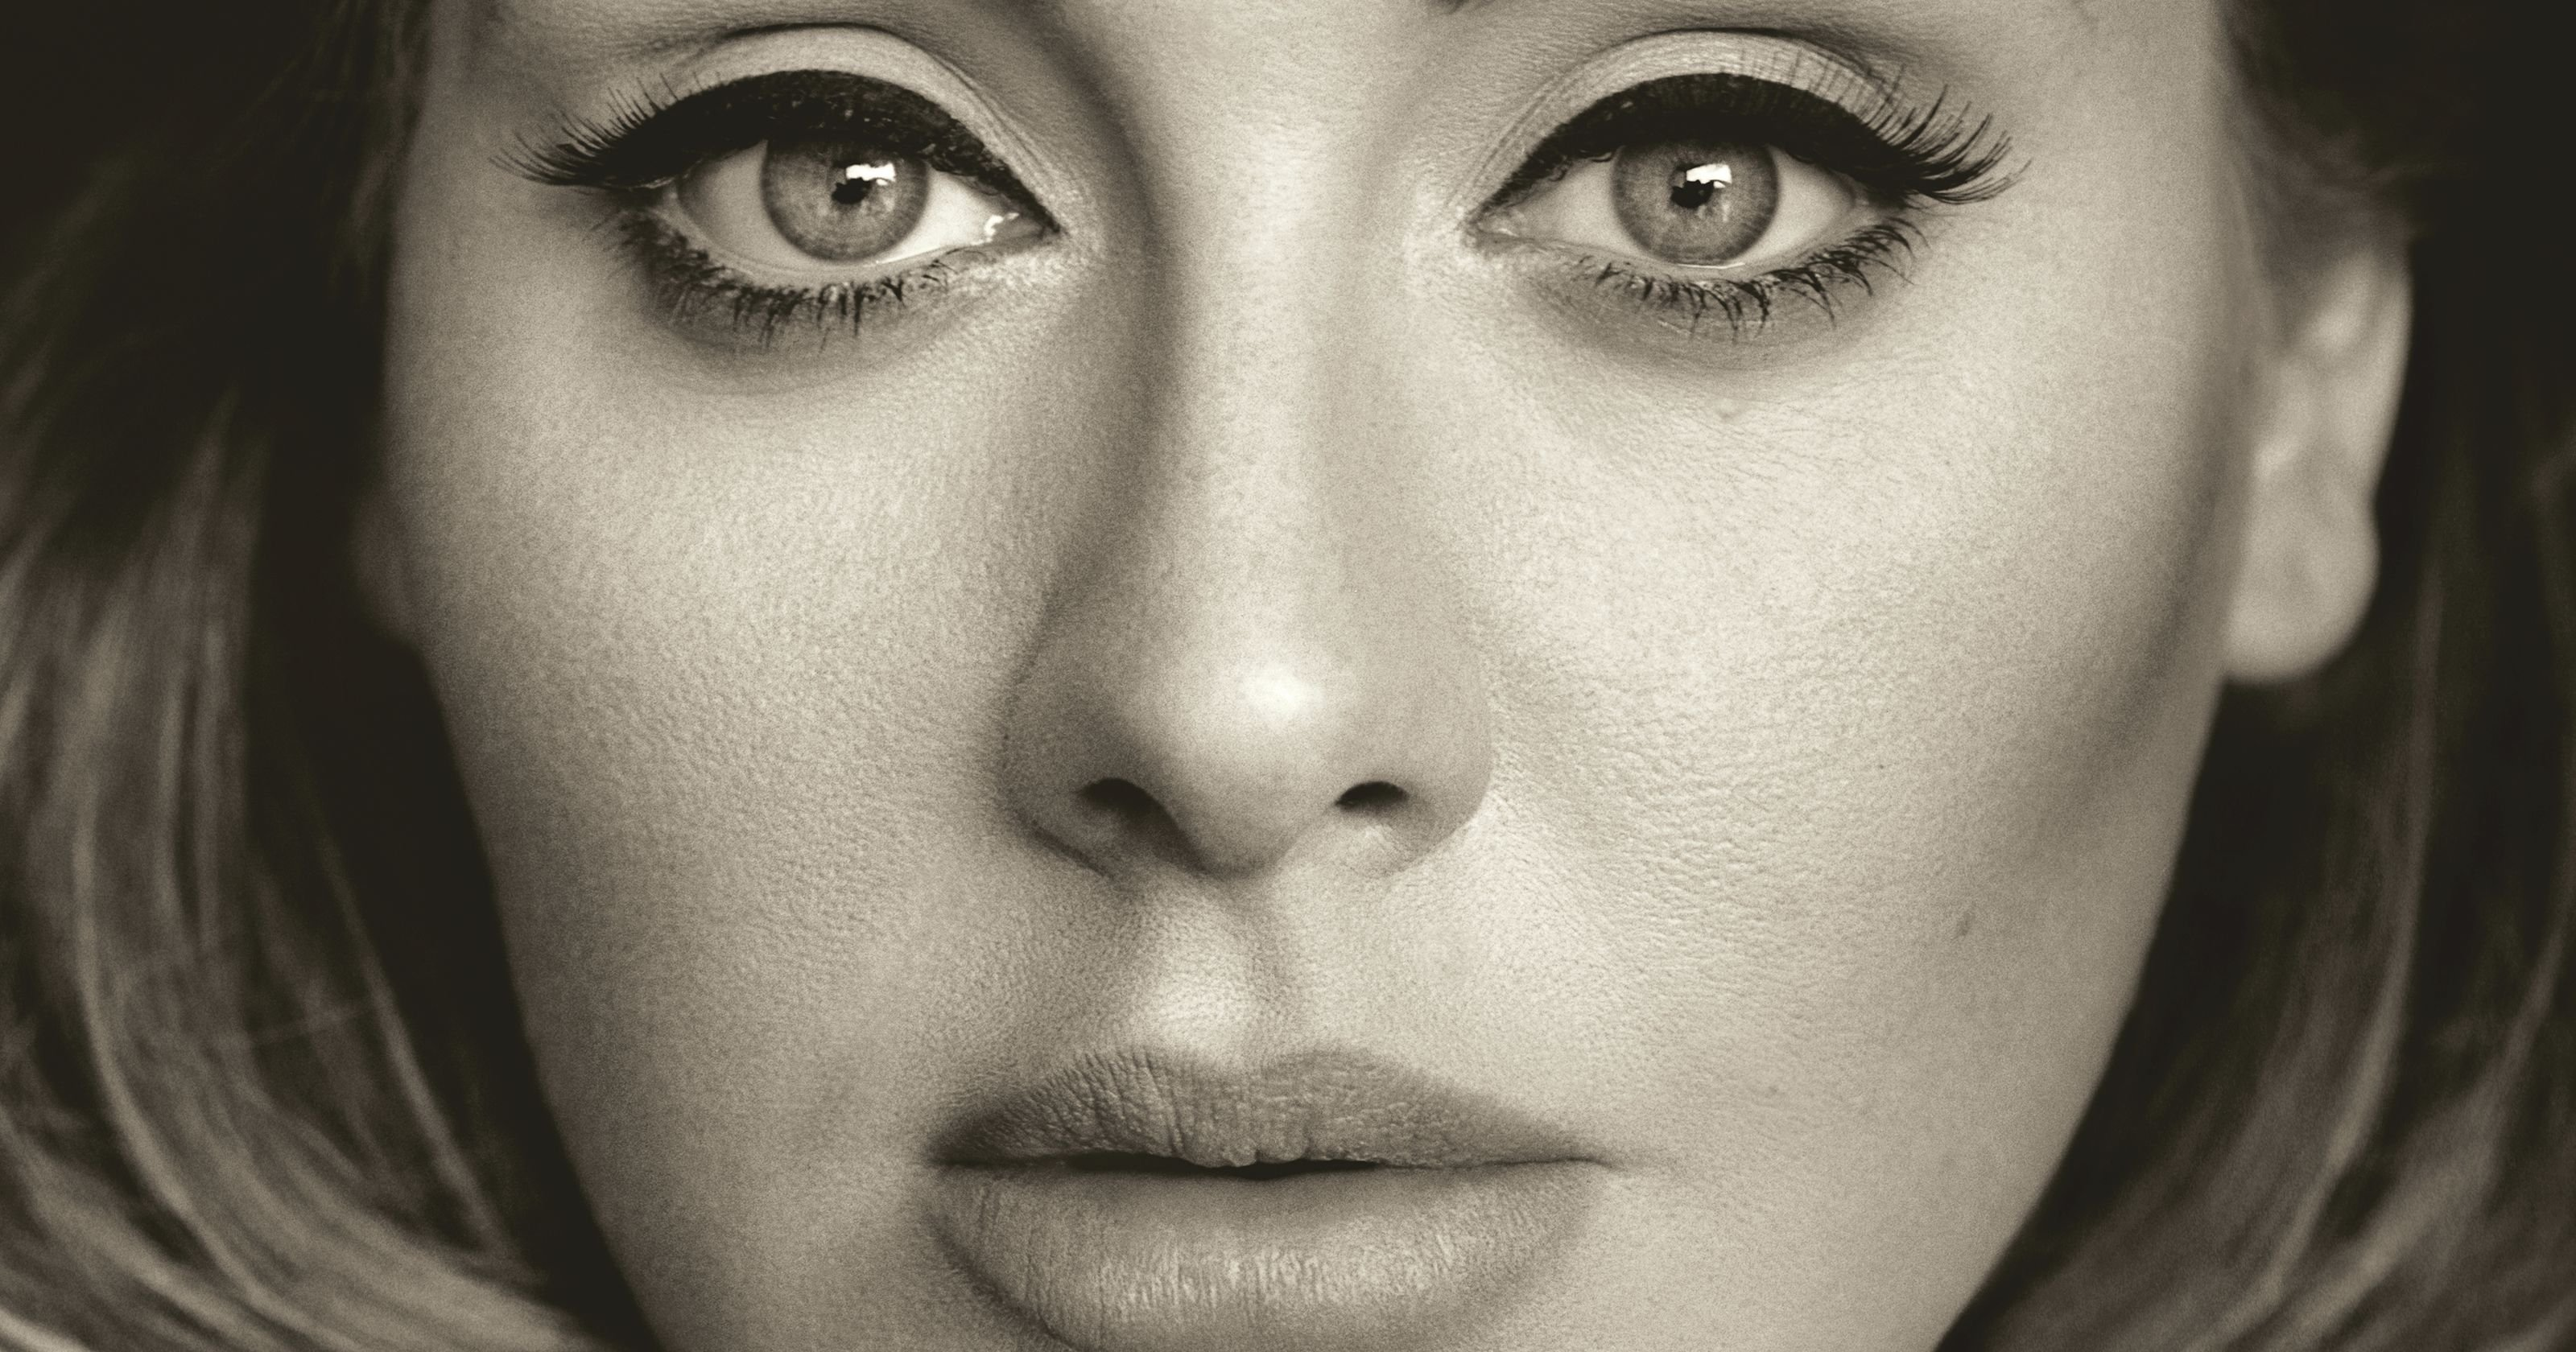 Adele-25-non-è-disponibile-in-streaming-ma-vende-2-milioni-di-copie-in-3-giorni